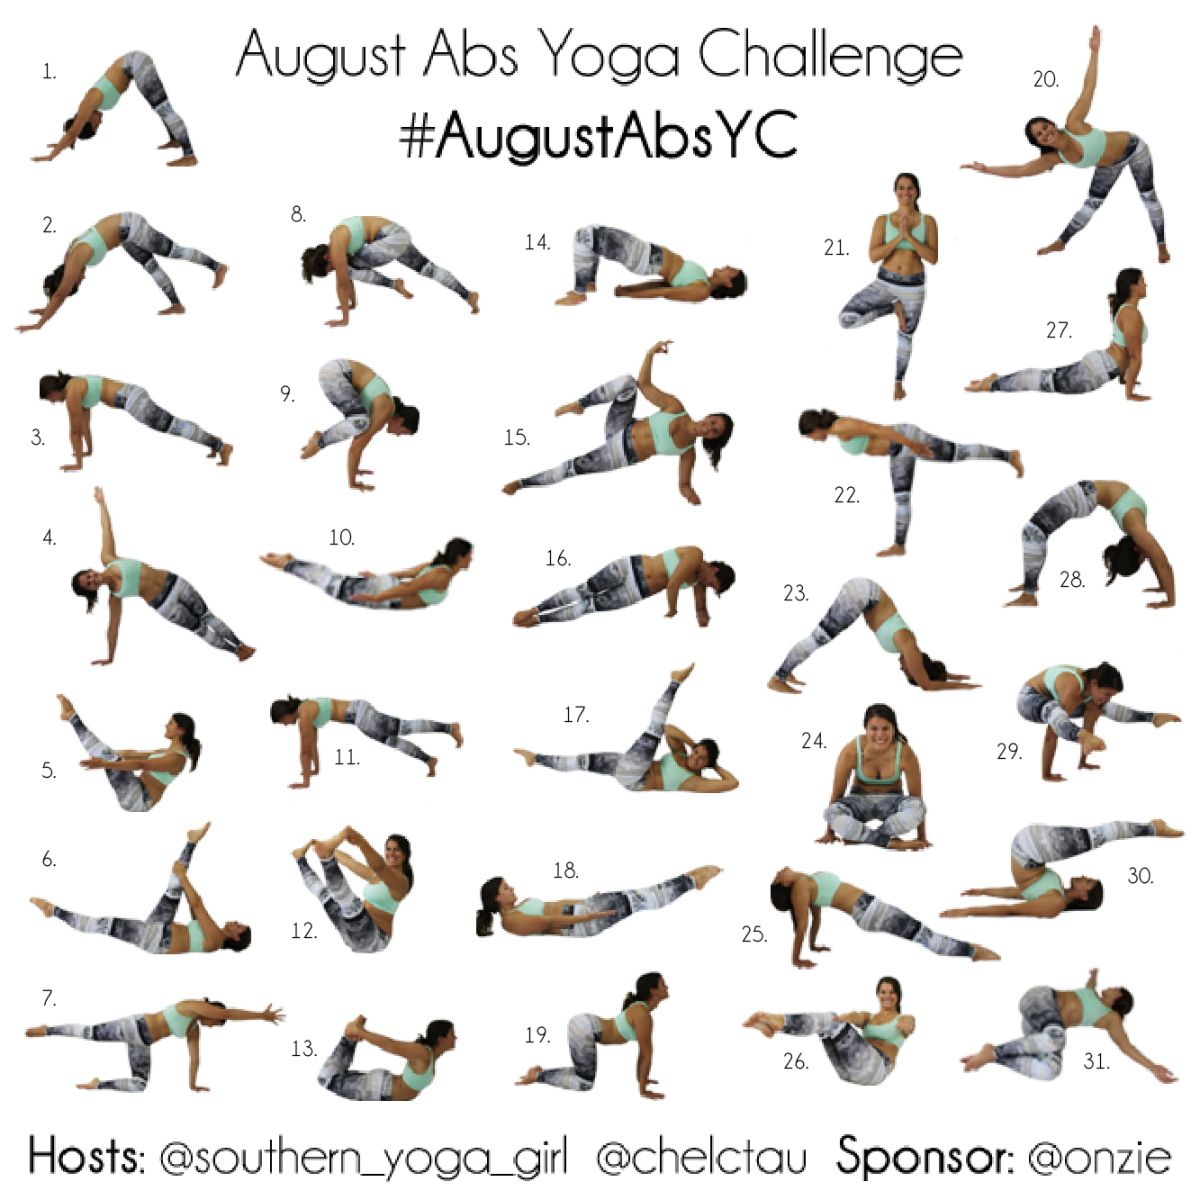 August Abs Yoga Challenge Part 2